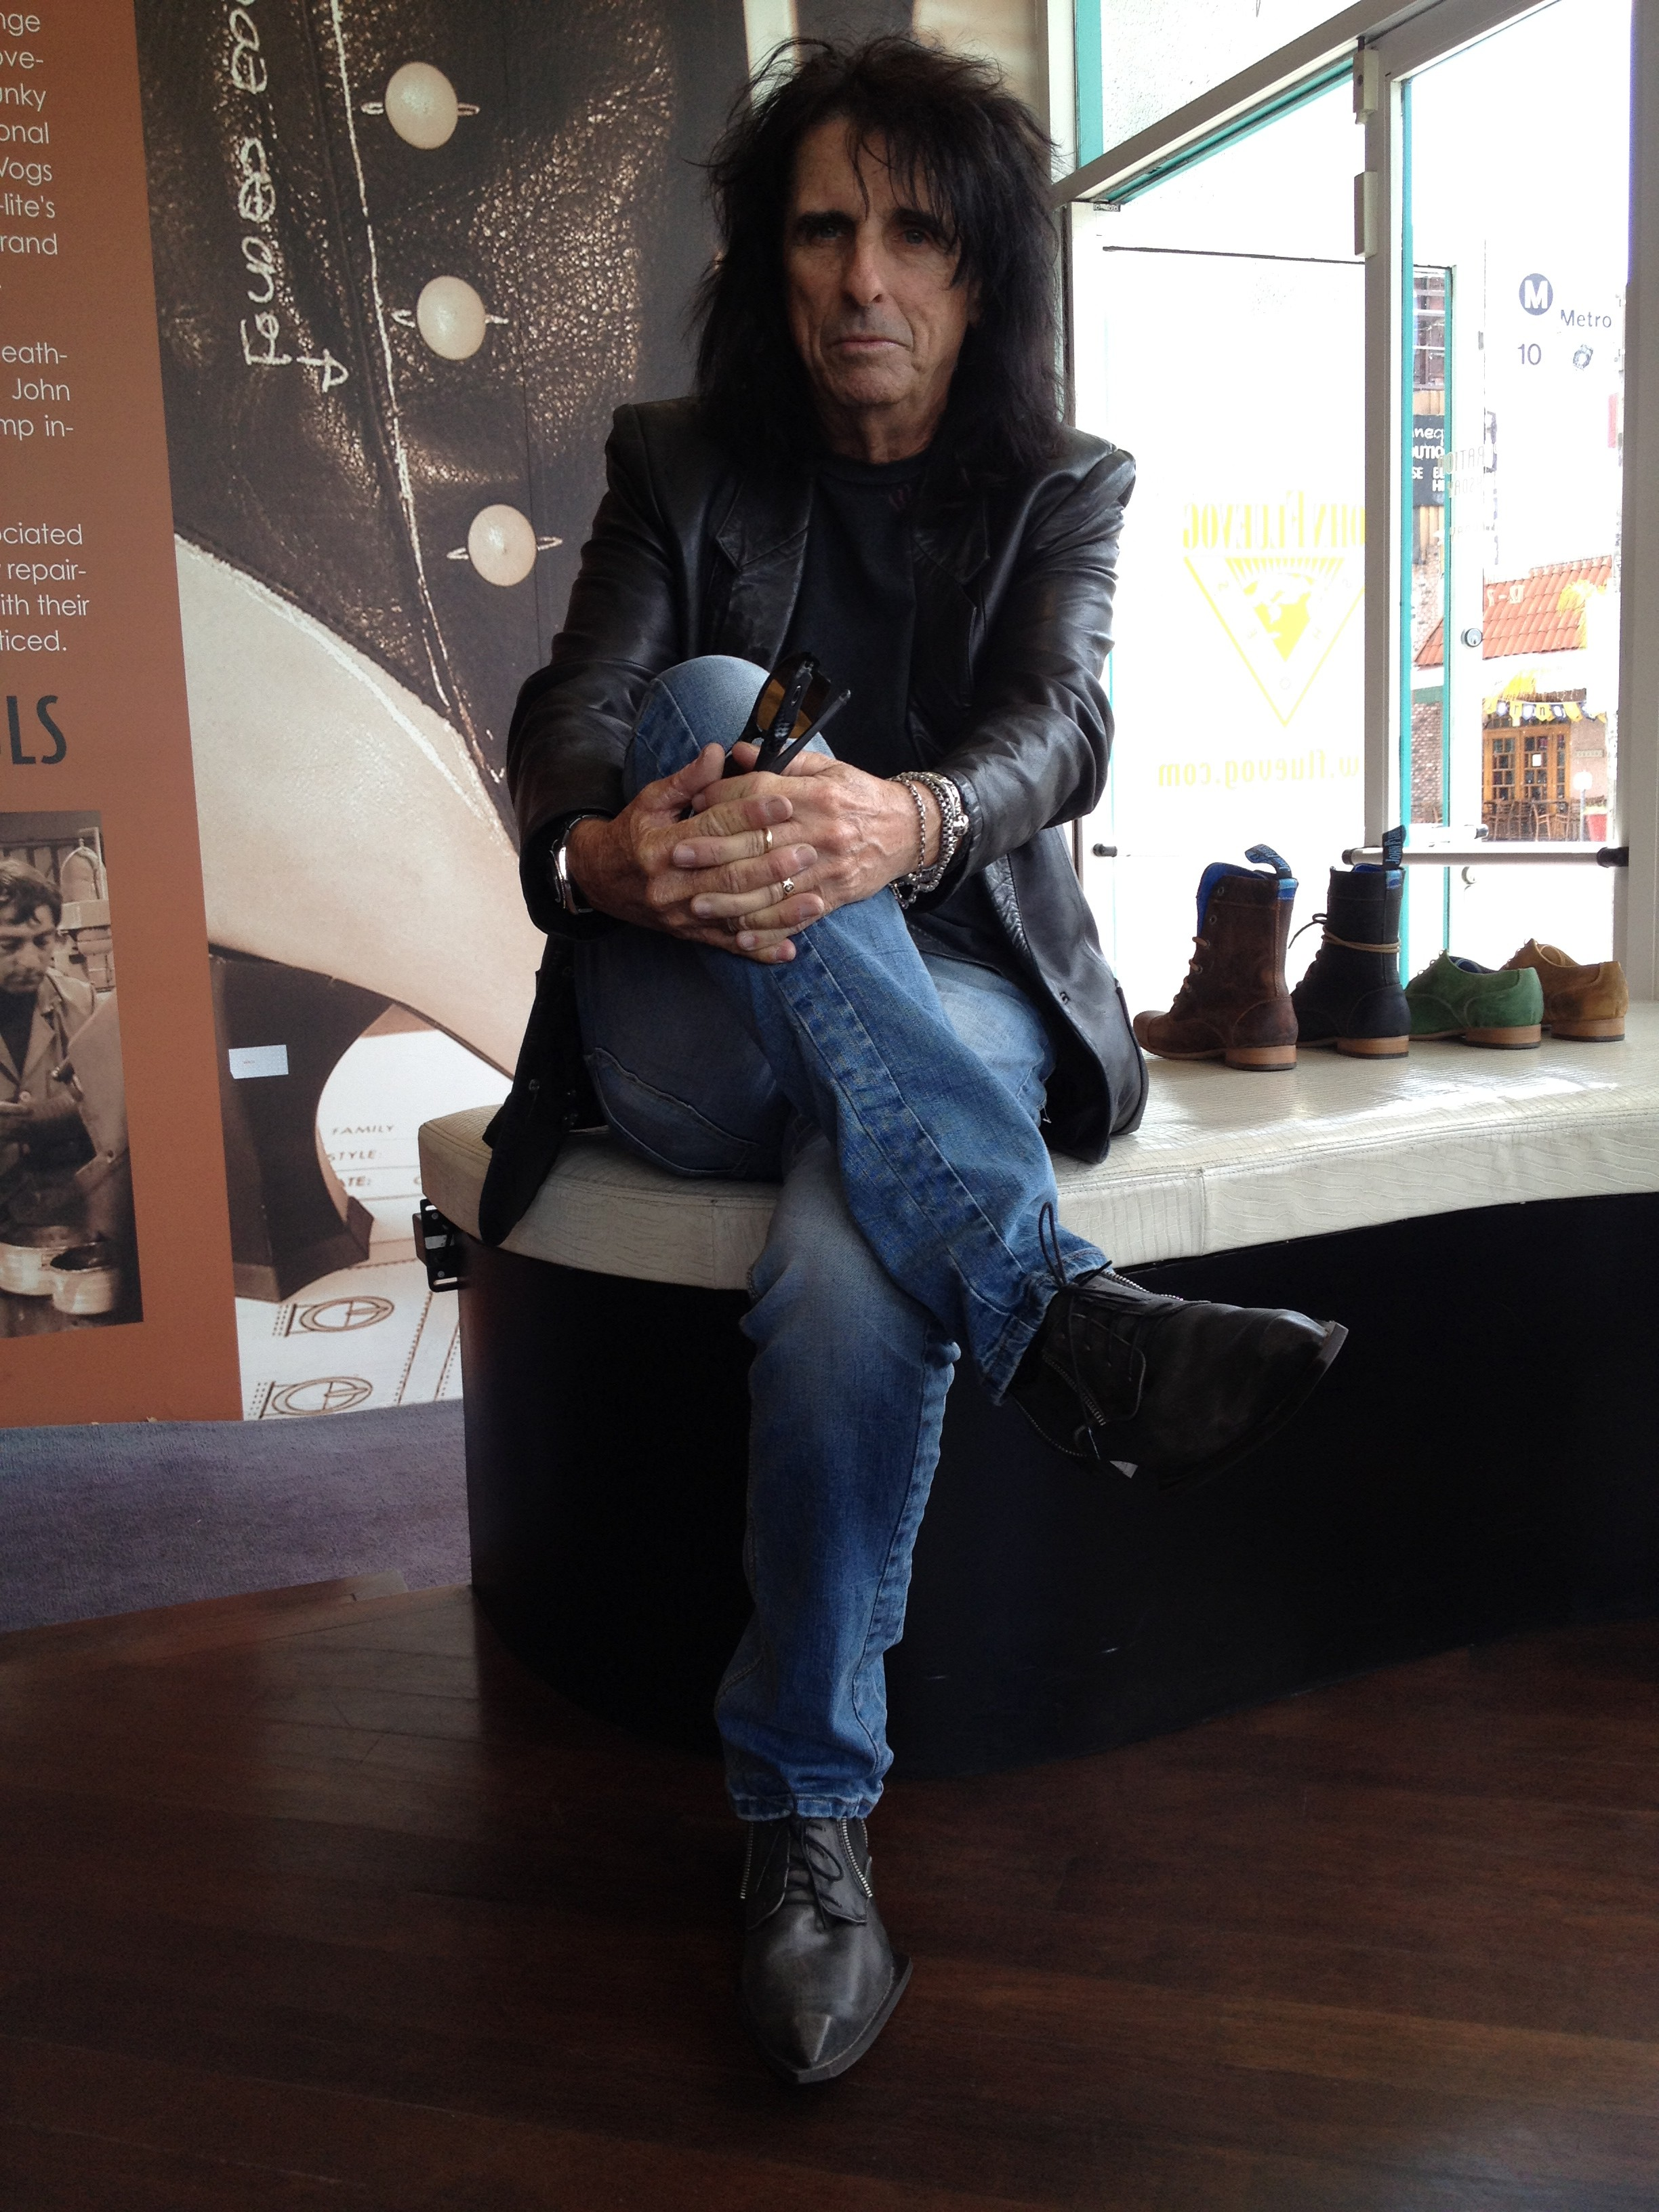 May 04, · cmon dude wrote: C'mon dude. Everybody and their brother knows that Alice Cooper was a runner in high school. Before long there'll be yet another thread about